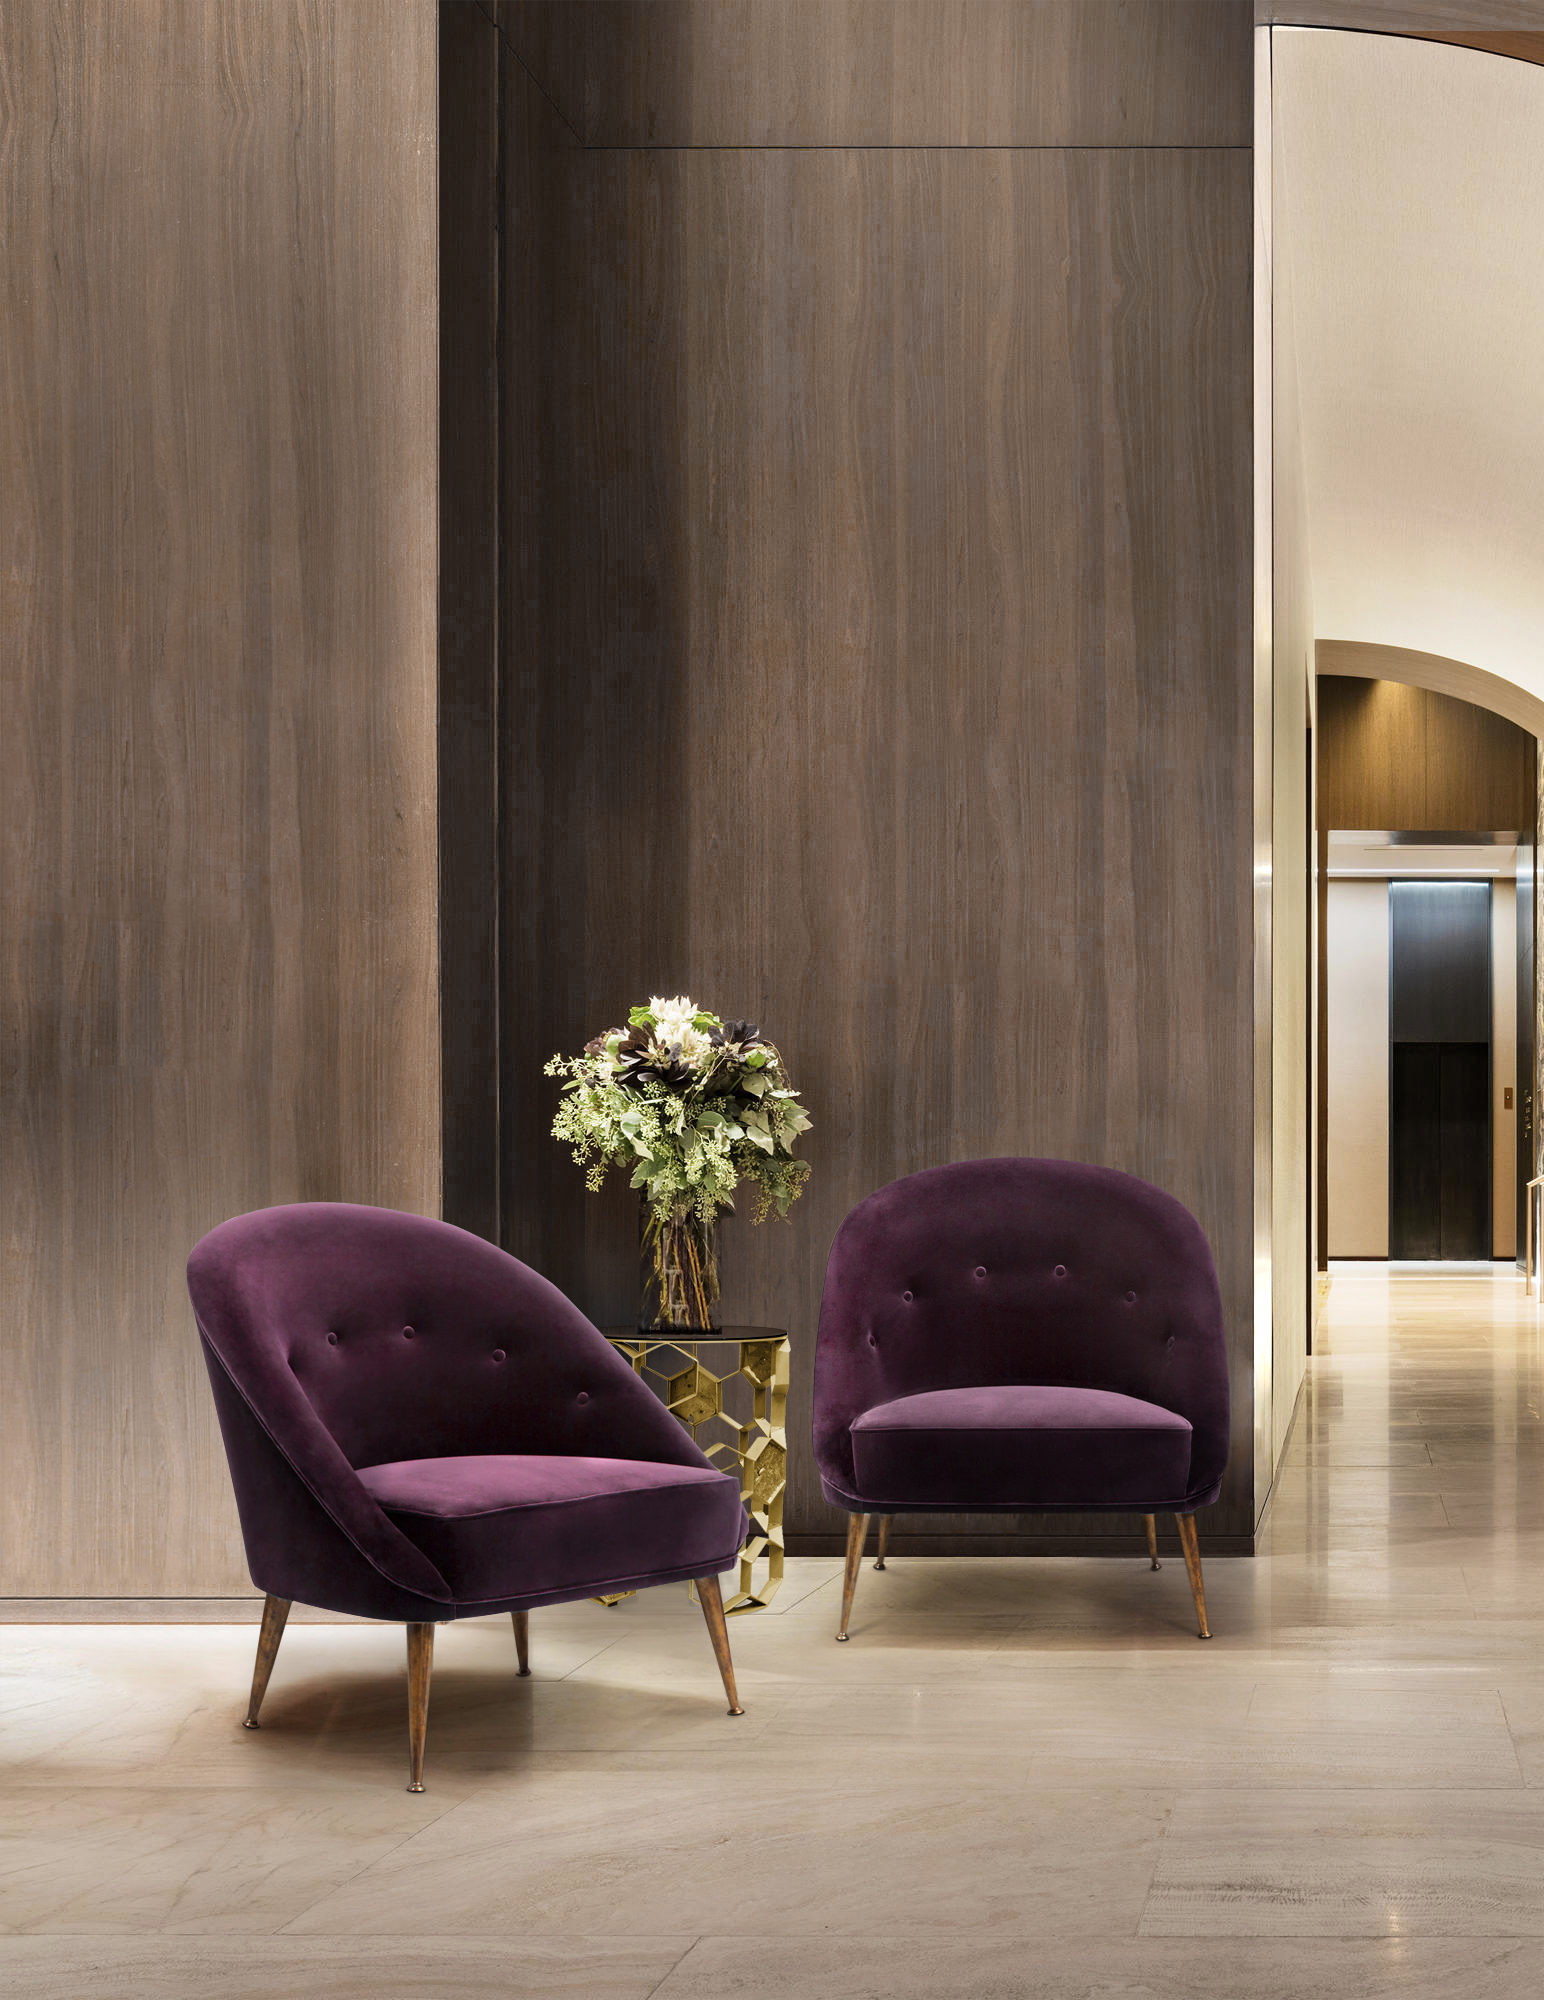 Hotel Lobbies and Waiting Spaces: A List Of 20 Modern Armchairs  modern armchairs Hotel Lobbies And Waiting Spaces: A List Of 20 Modern Armchairs Hotel Lobbies and Waiting Spaces A List Of 20 Modern Armchairs 11